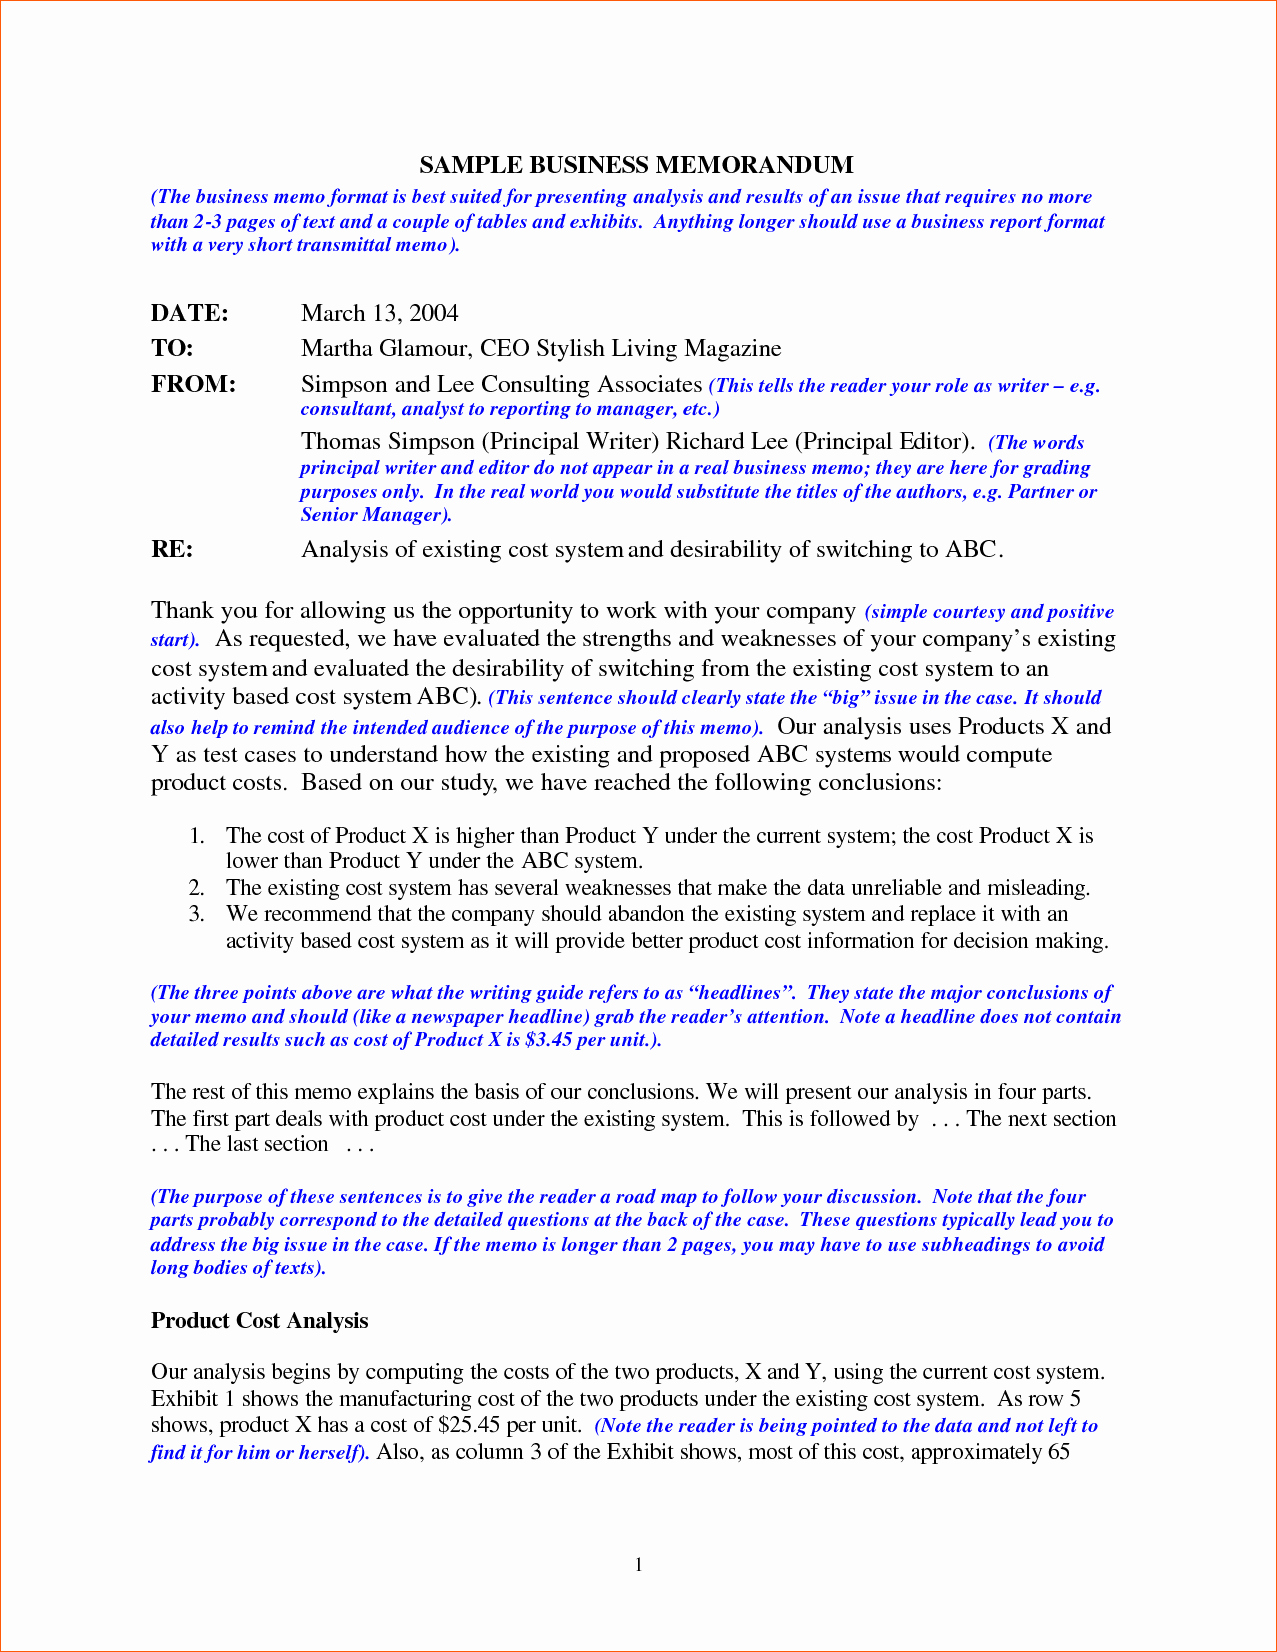 Format Of A Business Memorandum Awesome 6 Business Memo Sample